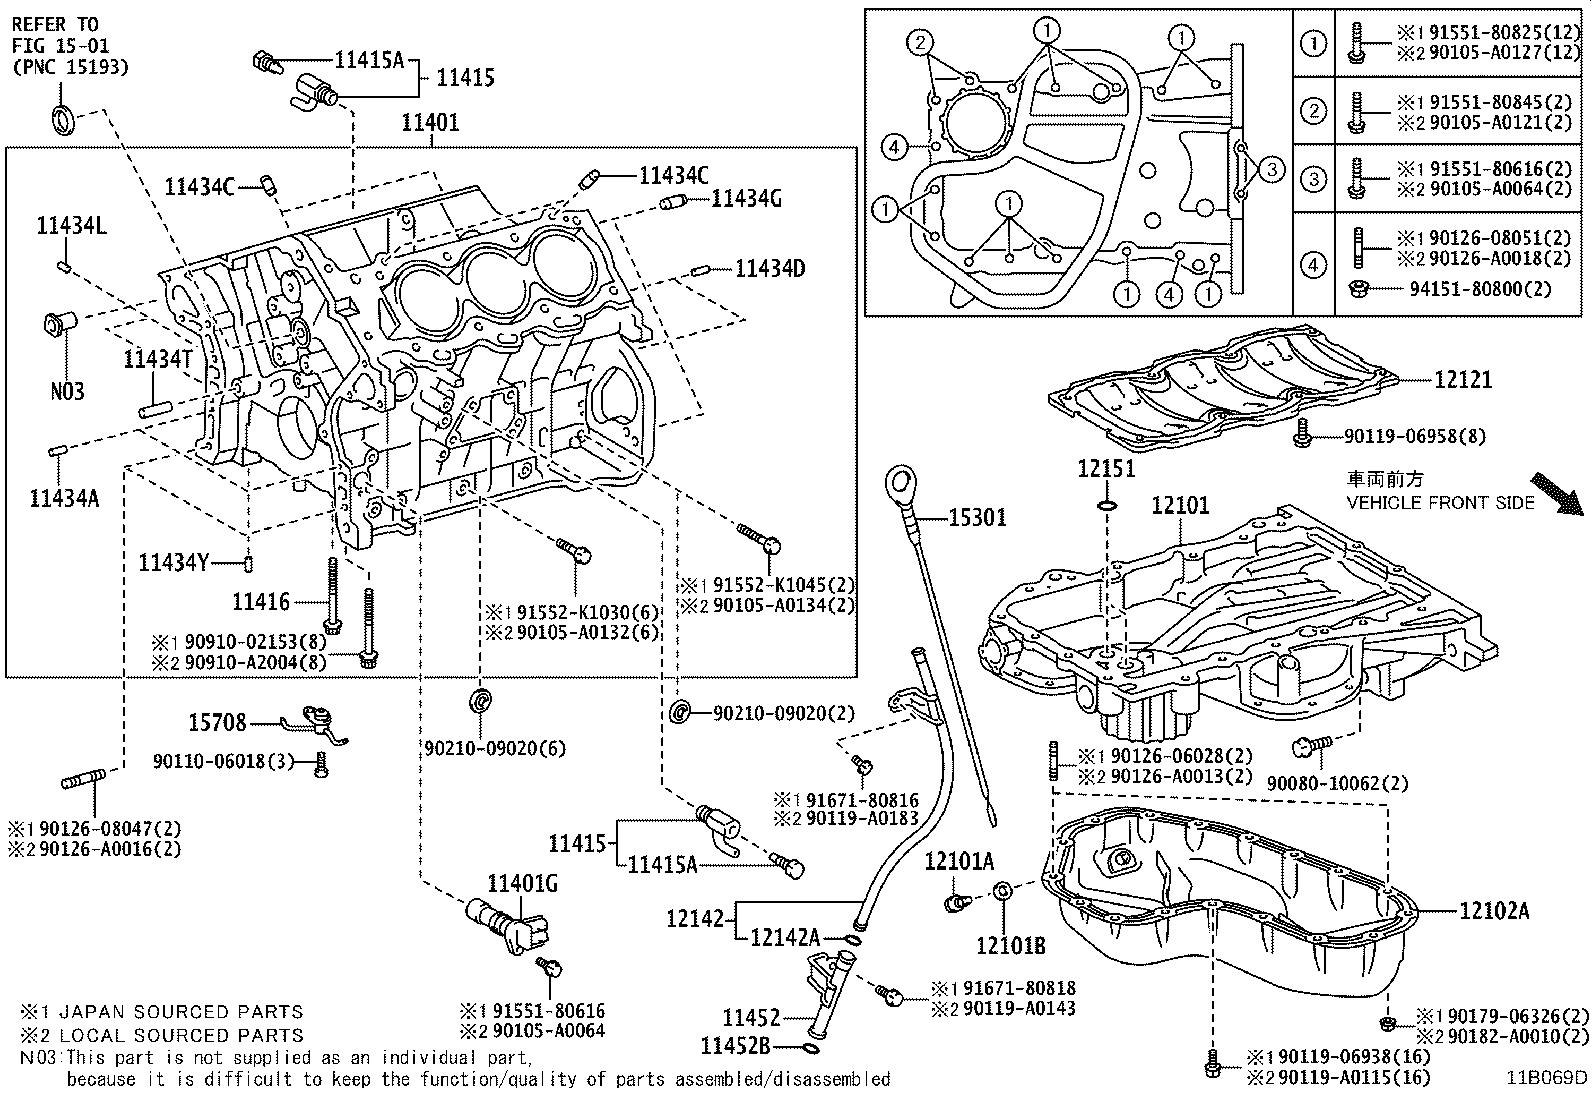 Toyota Avalon Engine Crankshaft Position Sensor  Intermittently  Die  Combustion